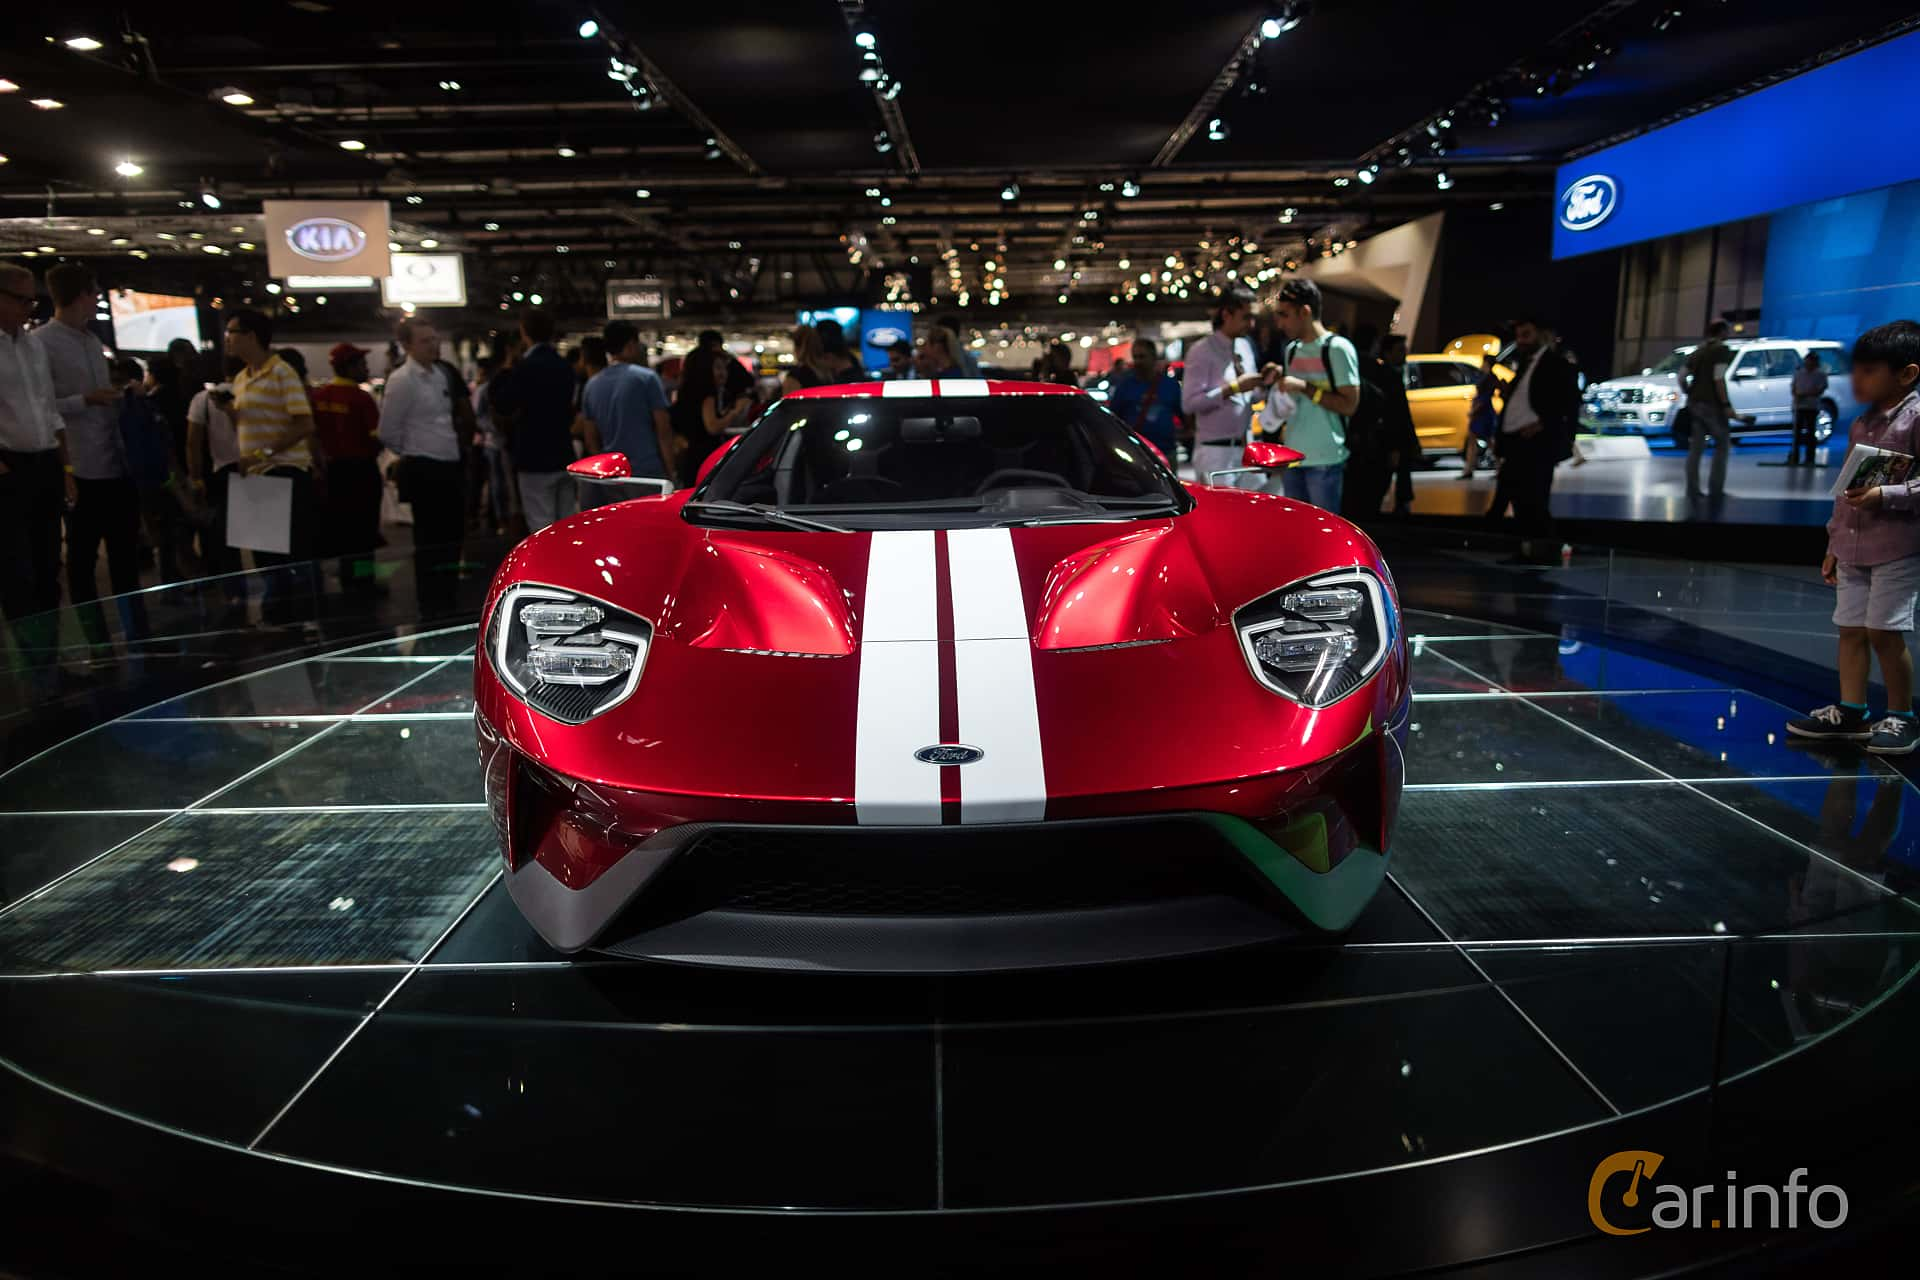 Ford GT 3.5 V6 Ecoboost DCT, 656hp, 2017 at Dubai Motor Show 2015